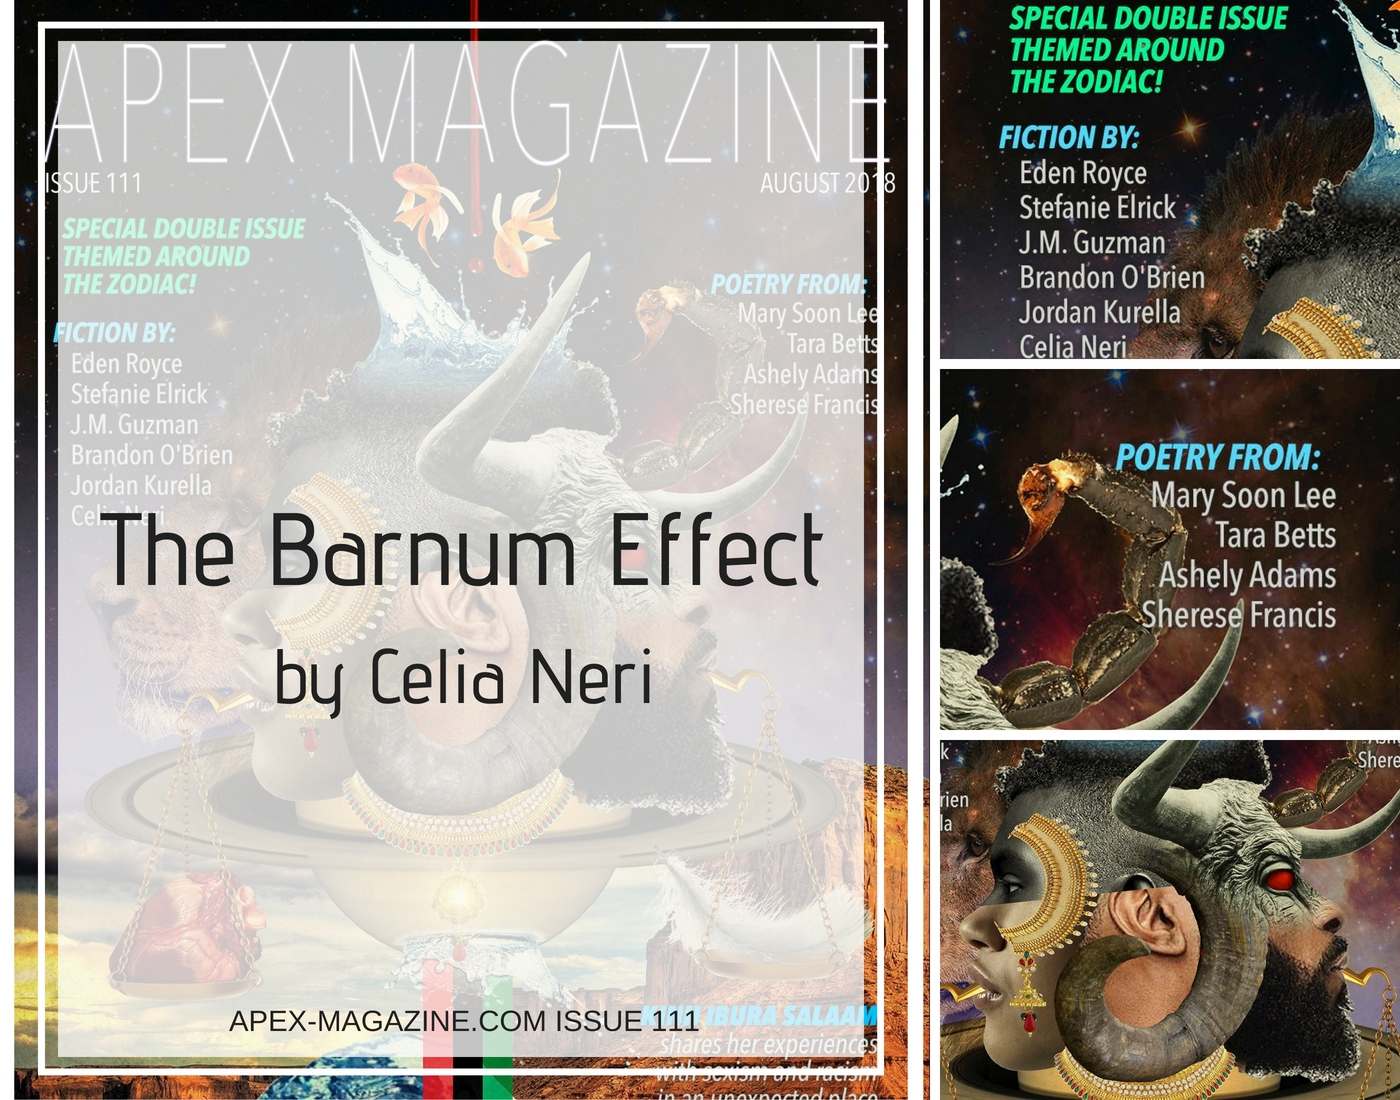 The Barnum Effect